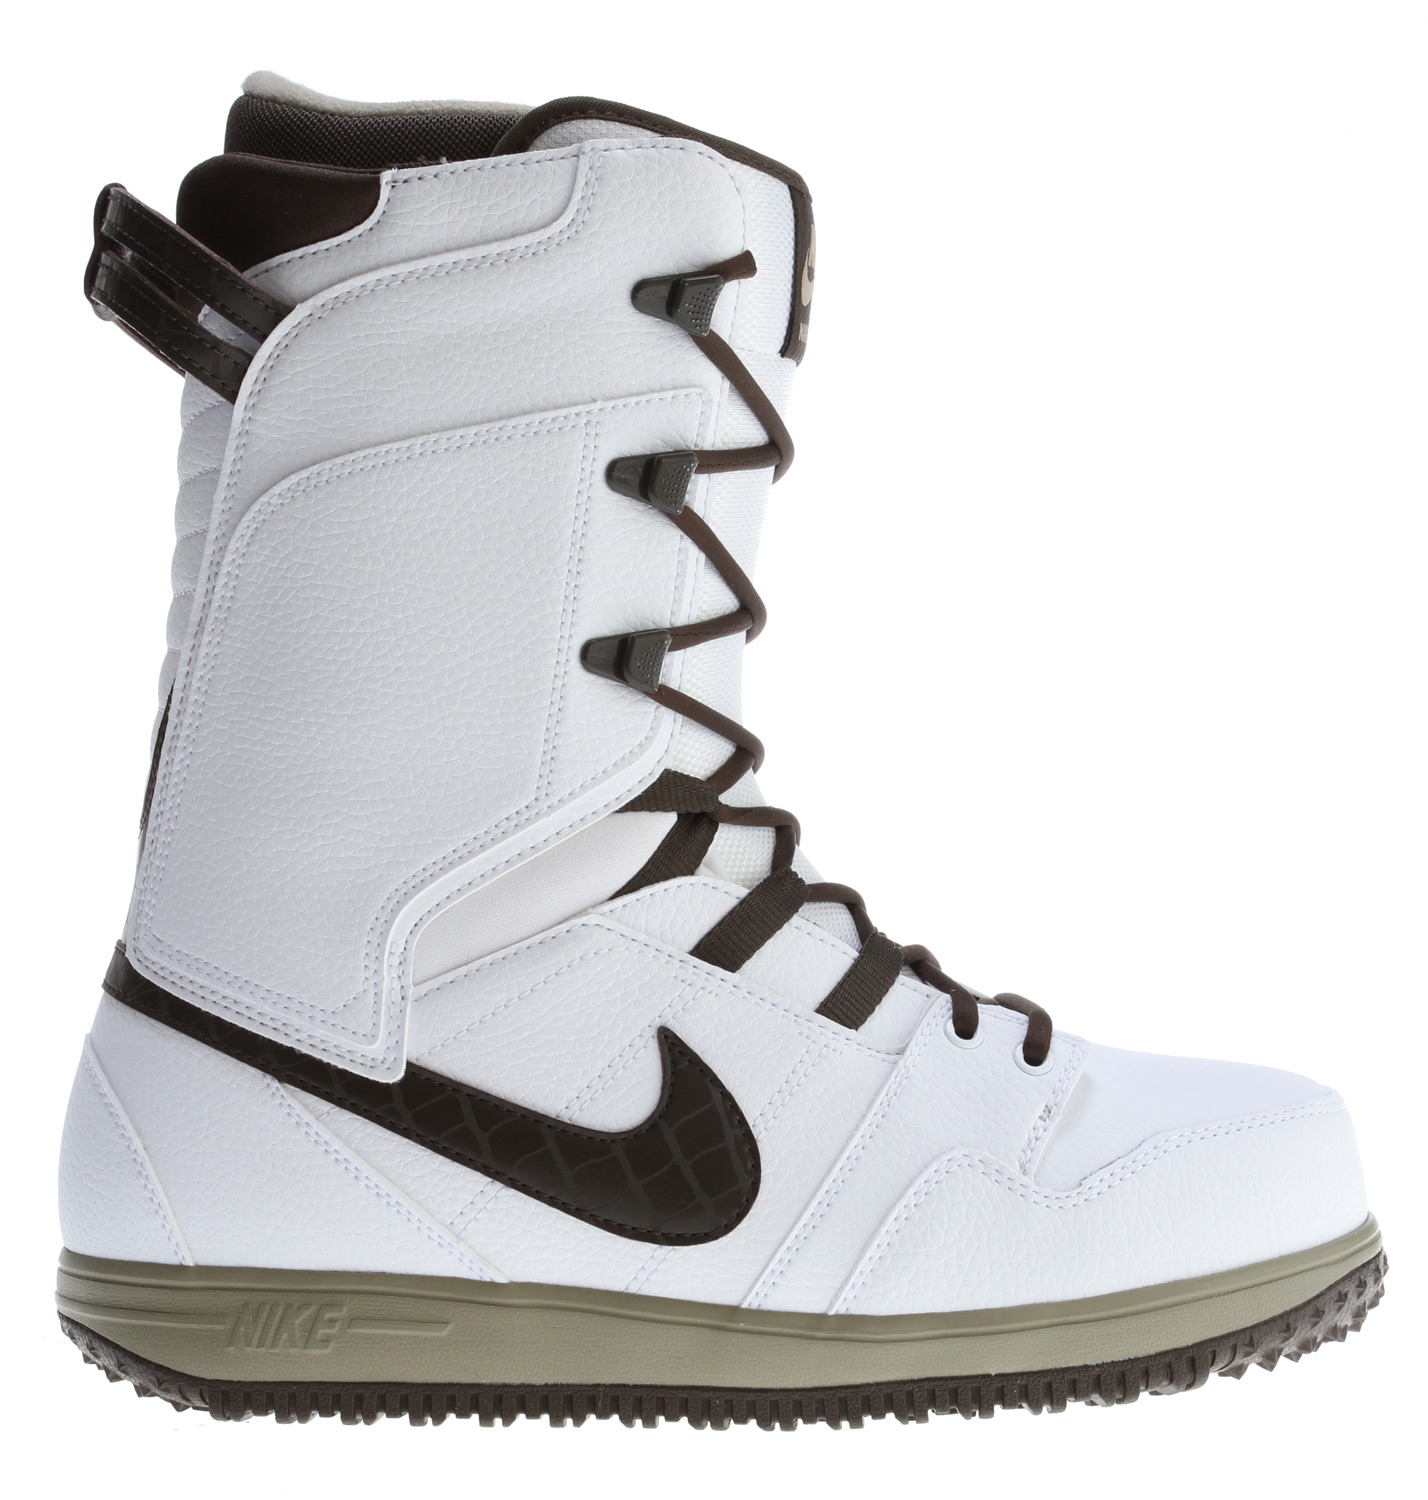 Snowboard The Nike Vapen snowboard boot is here! built to shred the mountain with a supportive flex that will keep you riding strong whether you are in love with the park or the white room. With a phylon midsole and outsole with full PU cushioning and a Nike Mogan 2 skate shoe inspired upper, the Vapen not only feels great, but keeps you looking good while doing it! The heat moldable liner is equipped with webbed lacing for a quick get up and go option and a warming blanket reflector to keep your dogs roastin'. JUST DO THE VAPEN!Key Features of the Nike Vapen Snowboard Boots::Upper Material: leather and nylon Sole Material: rubber Flex: Medium Lacing System: Regular Lace Liner Type: heat moldable Liner Lacing: regular lacing Removable Liner: Yes - $146.95